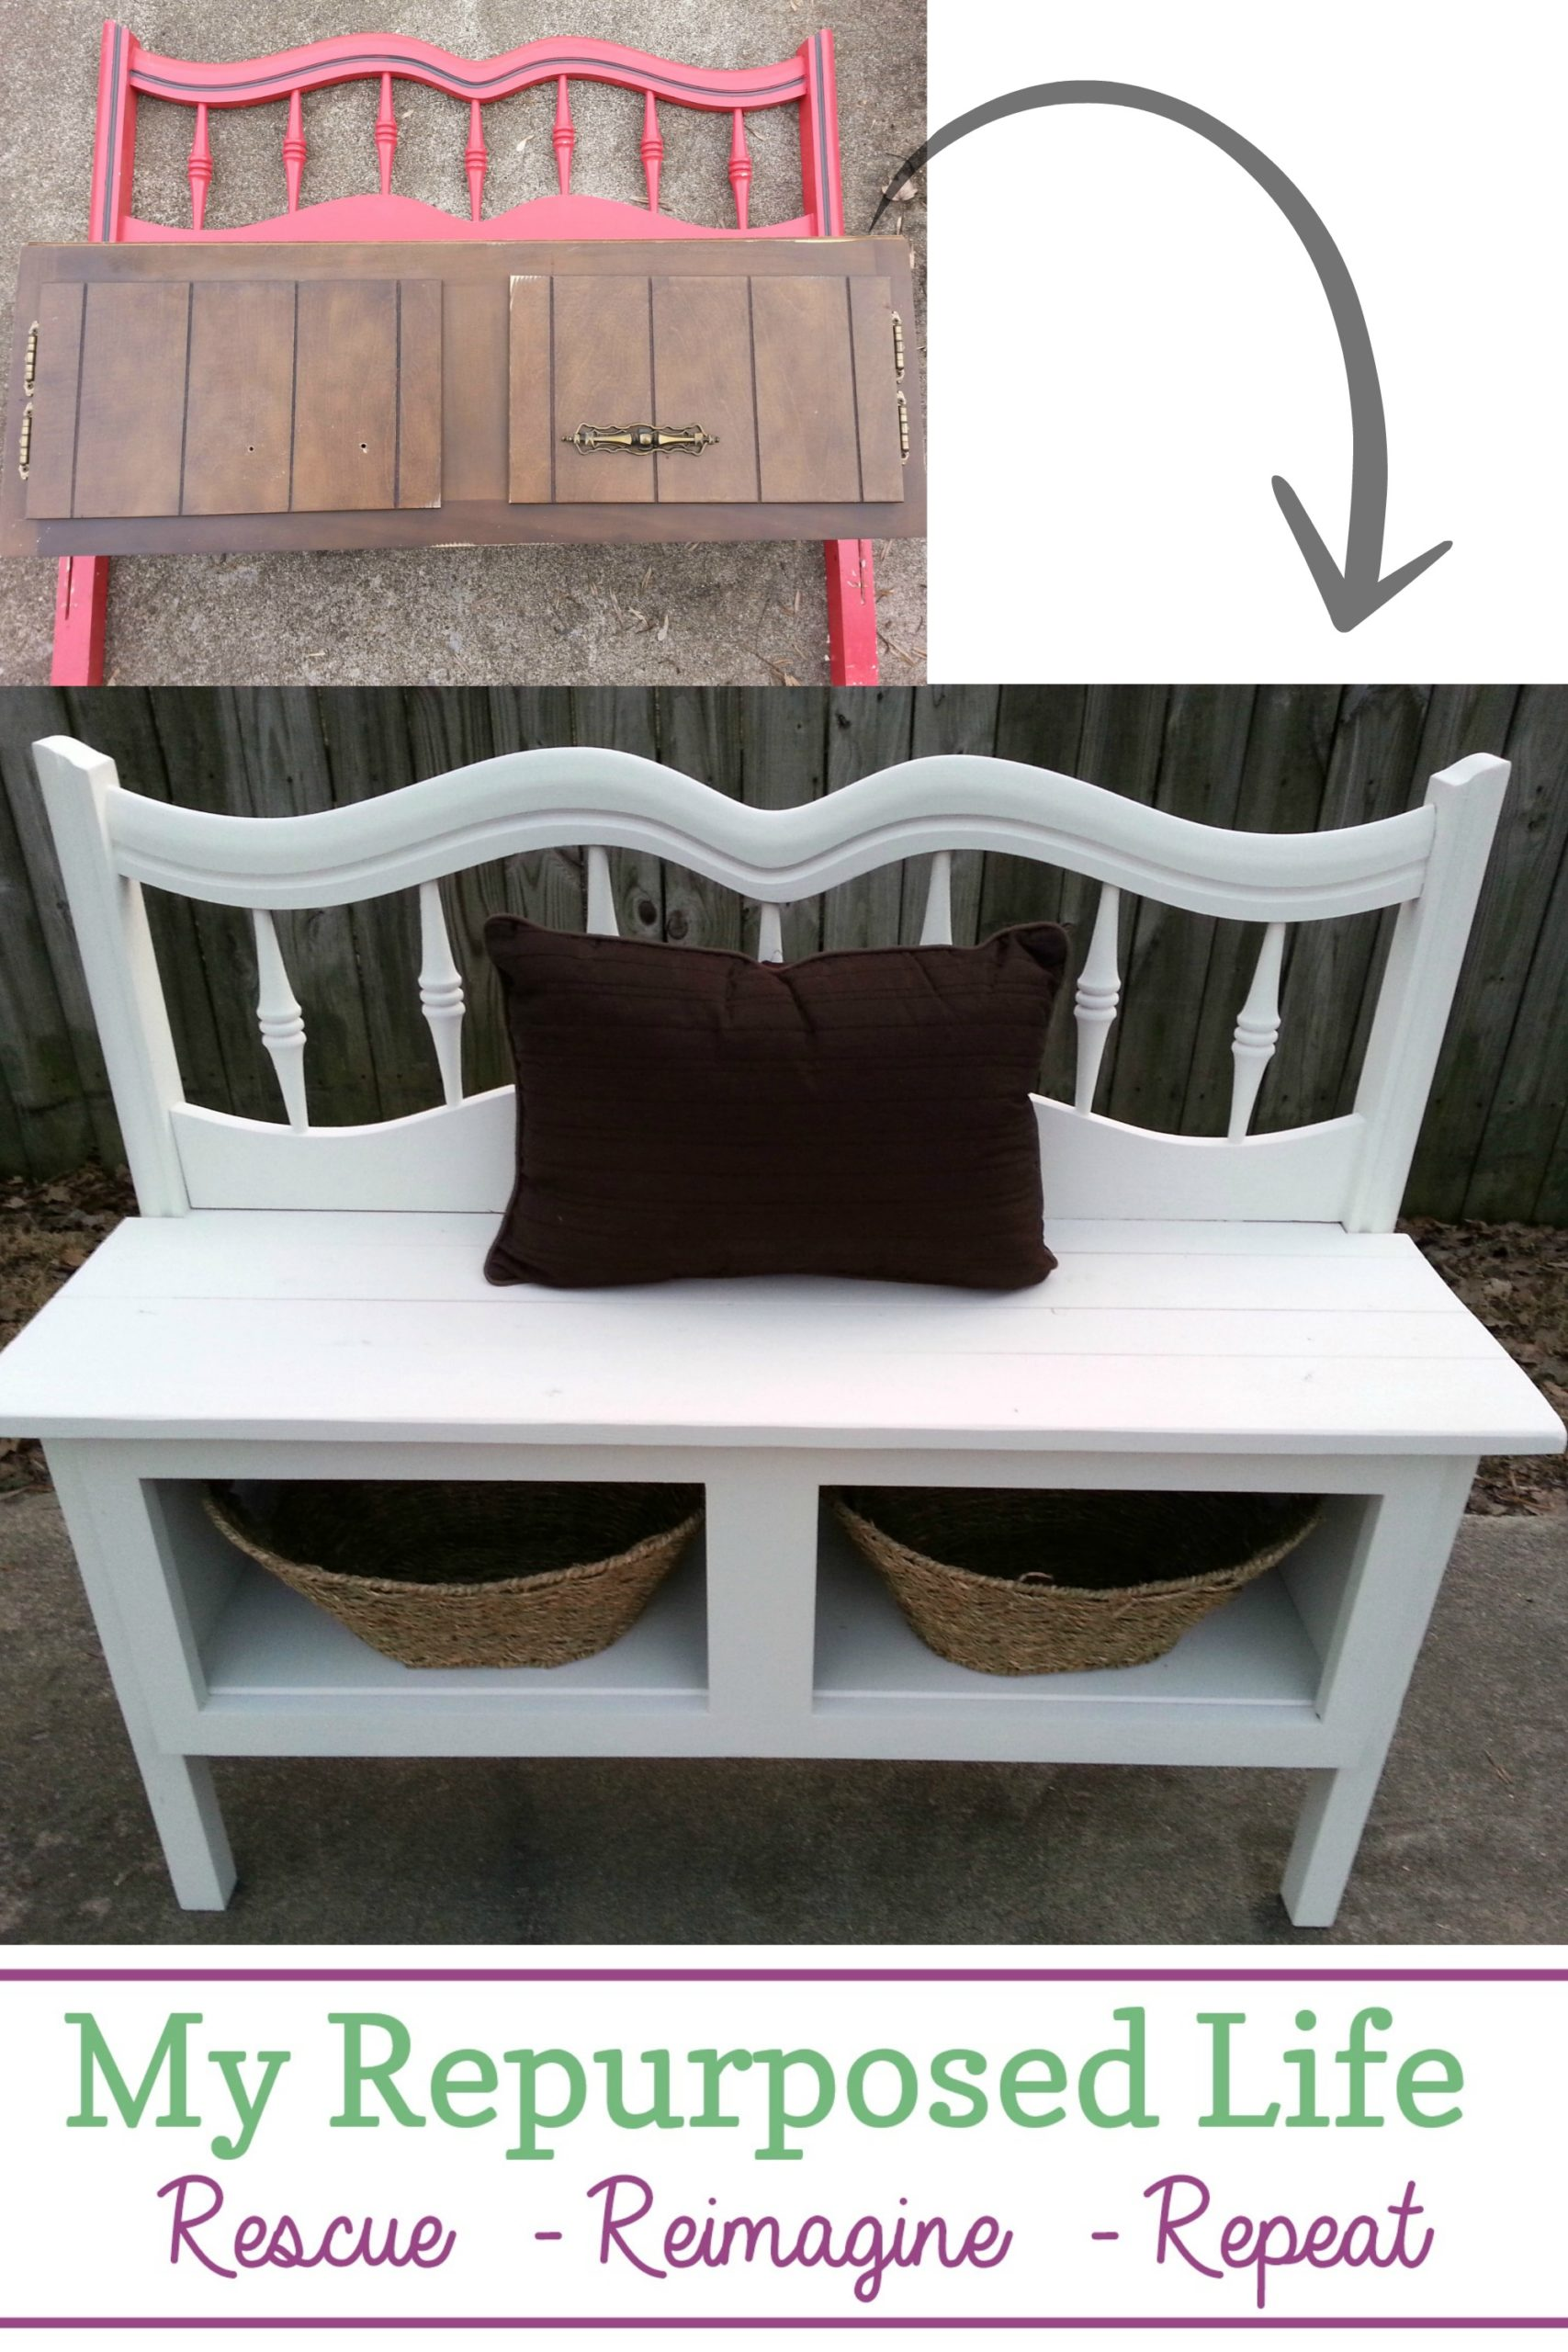 How to make a headboard entryway bench using reclaimed materials. It's surprising how similar in size the kitchen cabinet and the headboard were. It made it relatively easy to marry the two pieces to make a fun bench! #MyRepurposedLife #repurposed #furniture #entryway #bench #headboard  via @repurposedlife